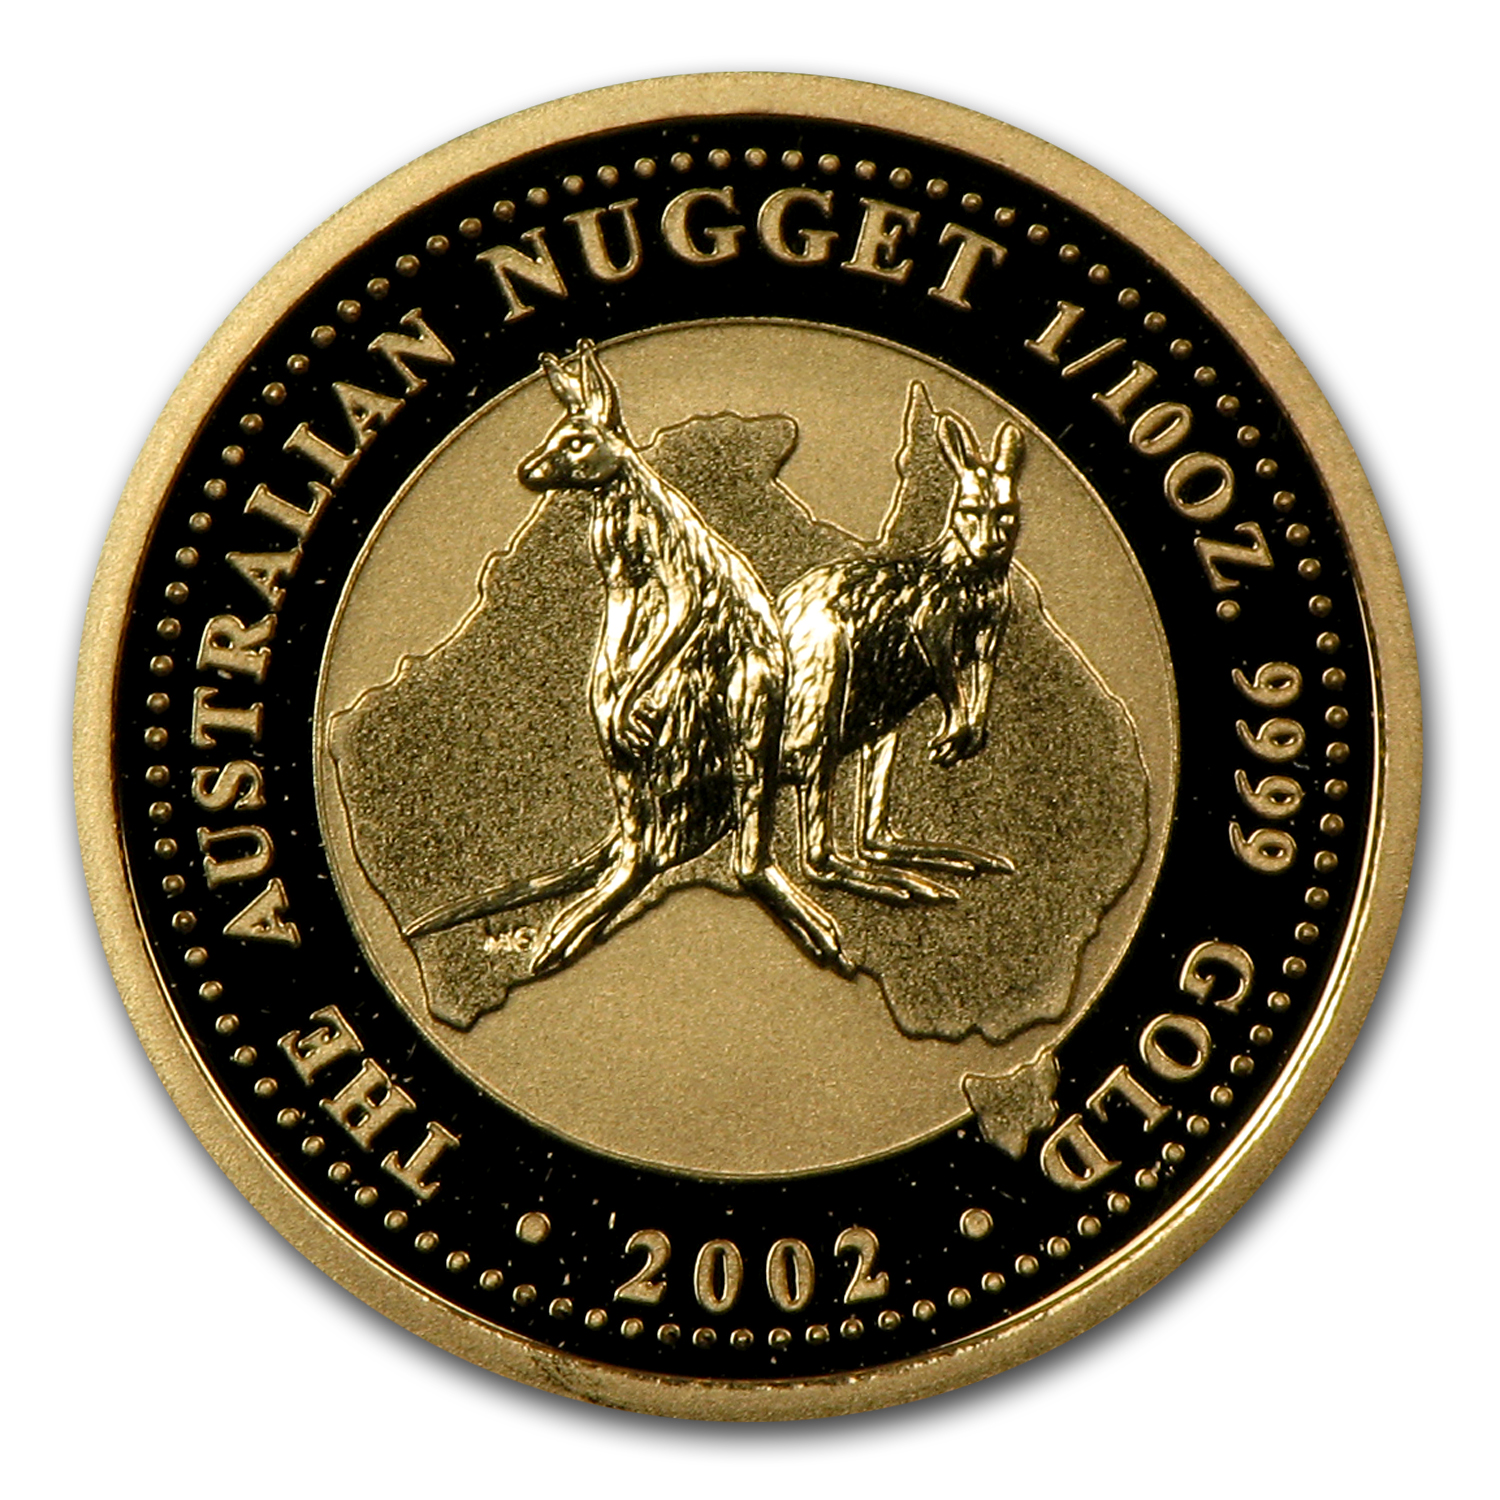 2002 Australia 1/10 oz Gold Nugget